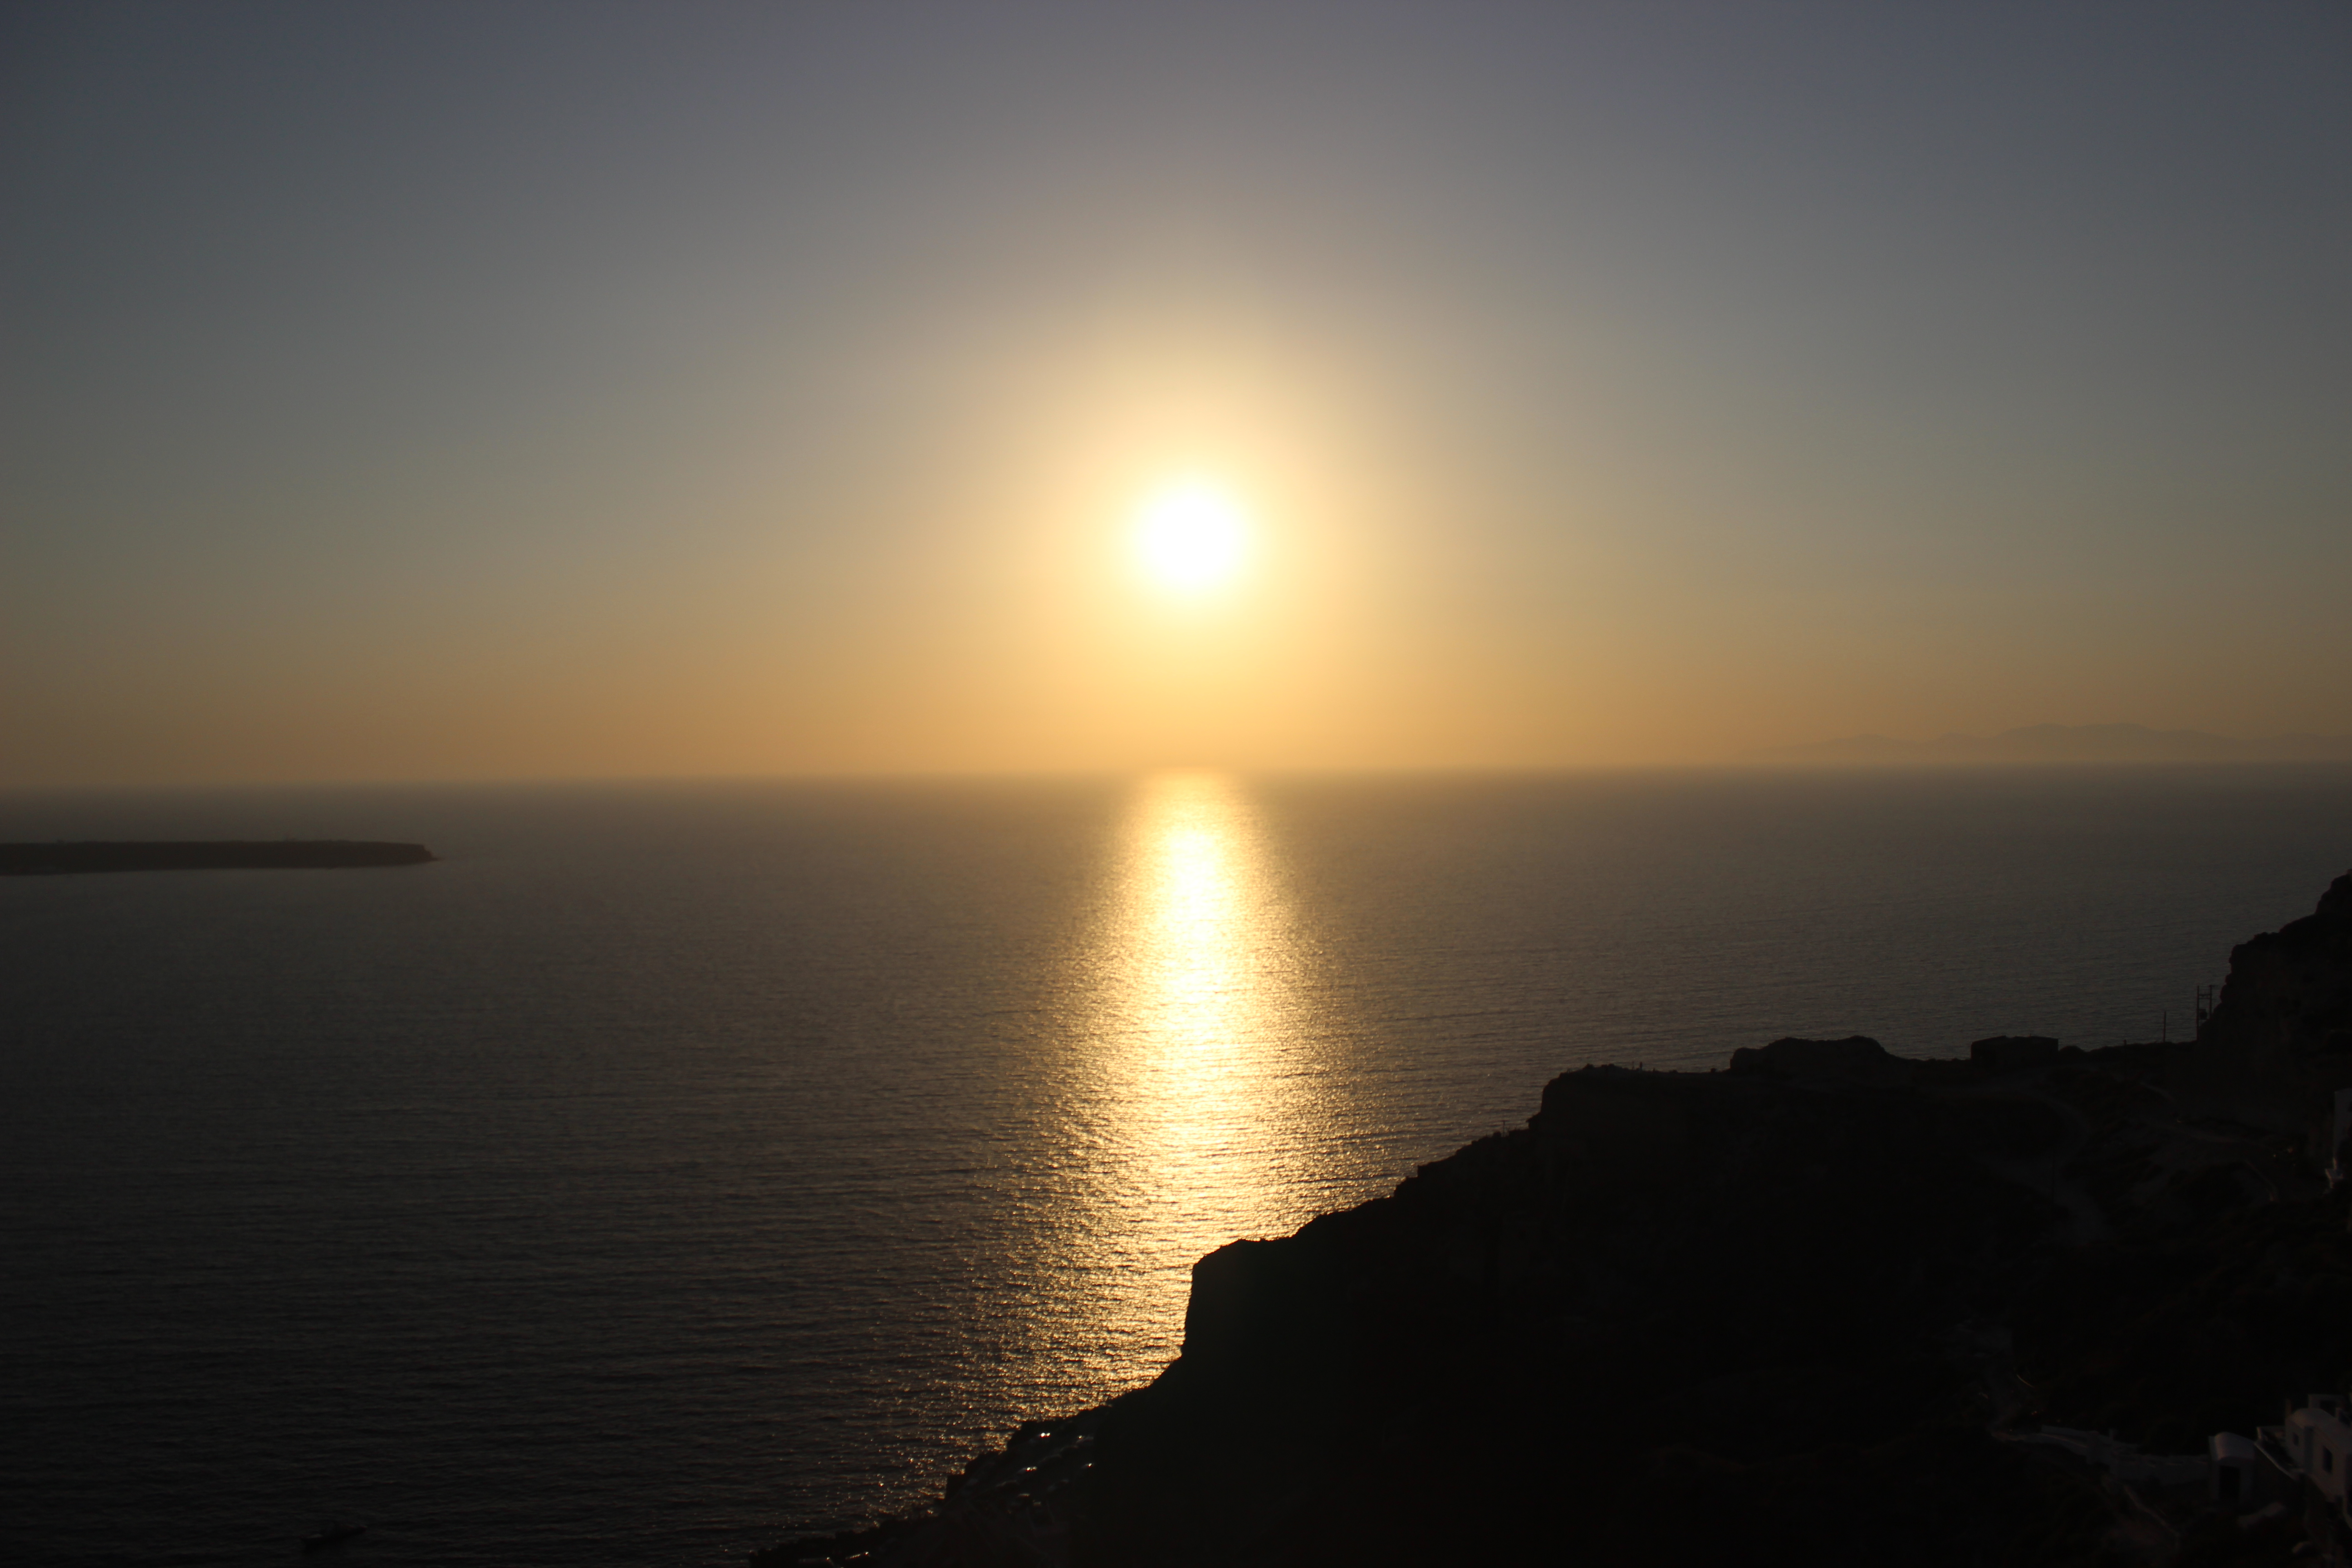 29. Silver and gold of Sunset - Oia, Santorini